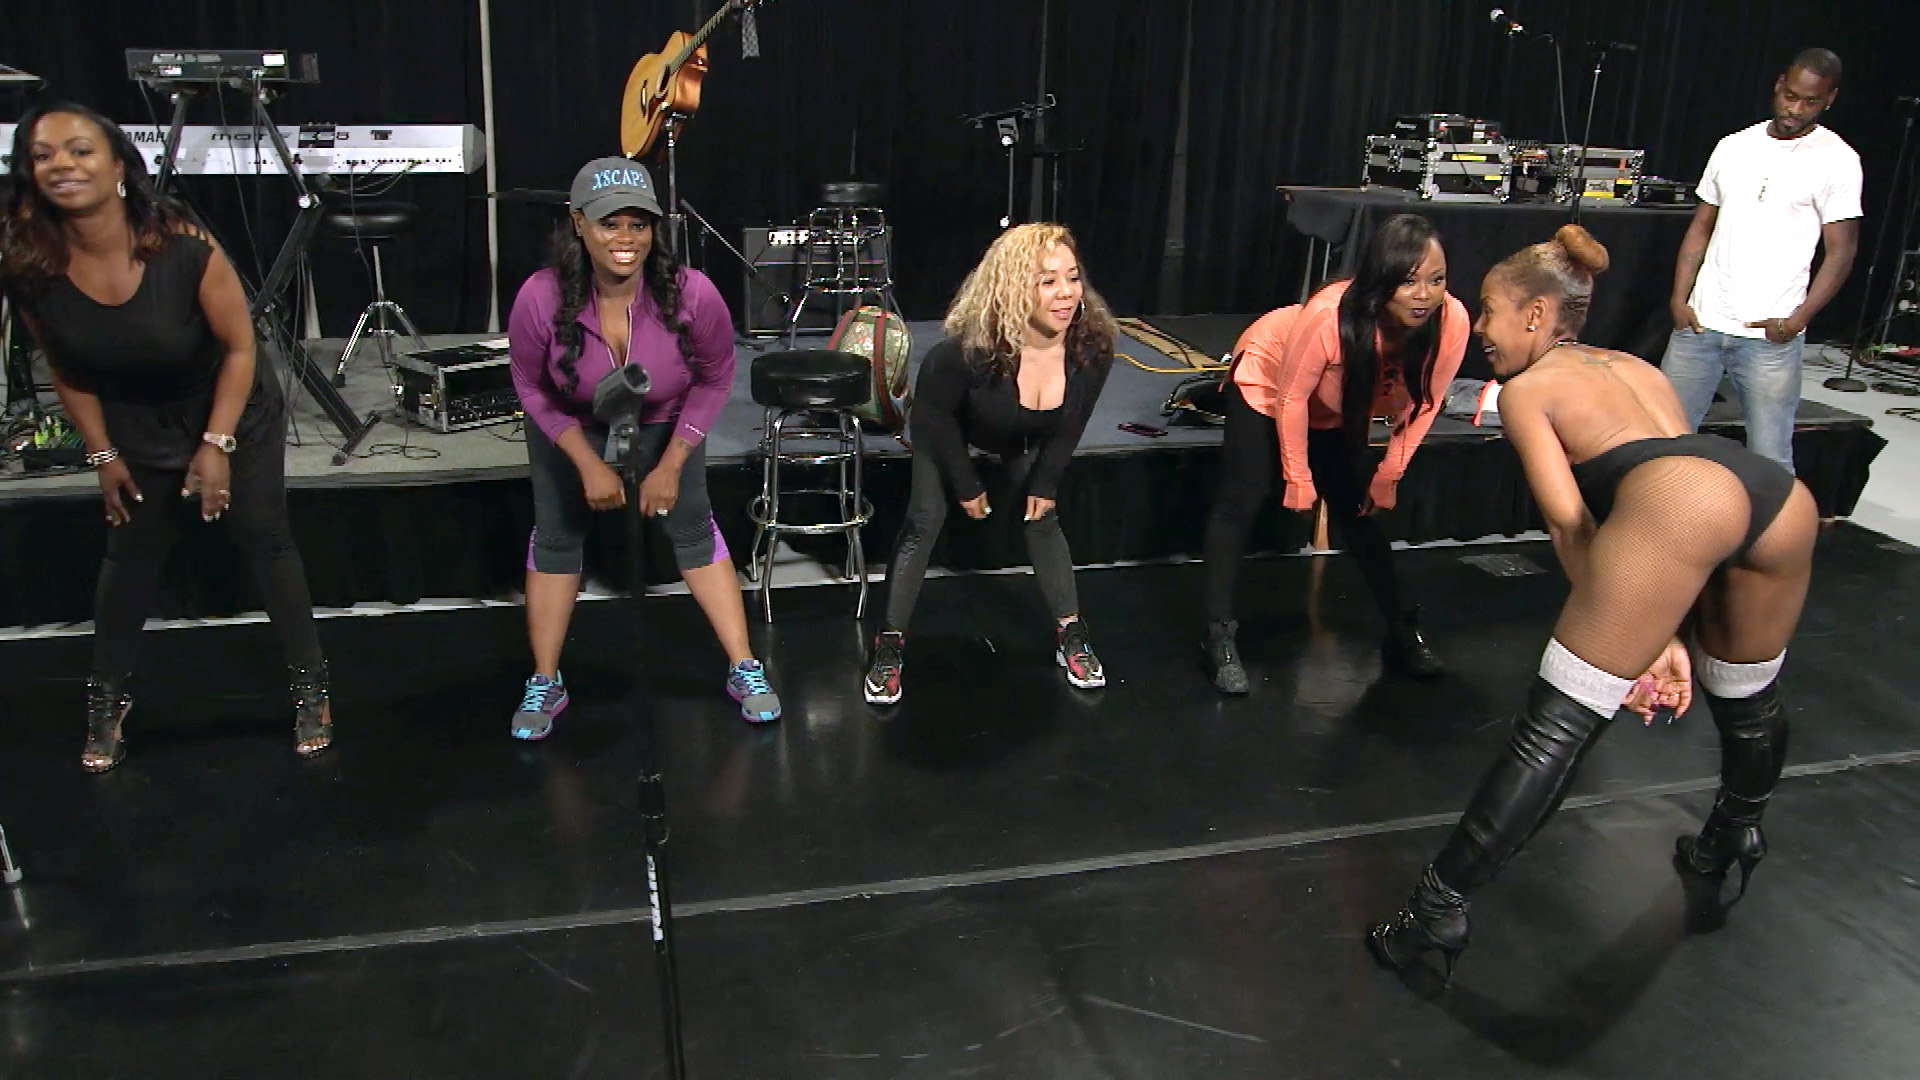 Kandi Burruss Is Not Feeling This Dance Rehearsal